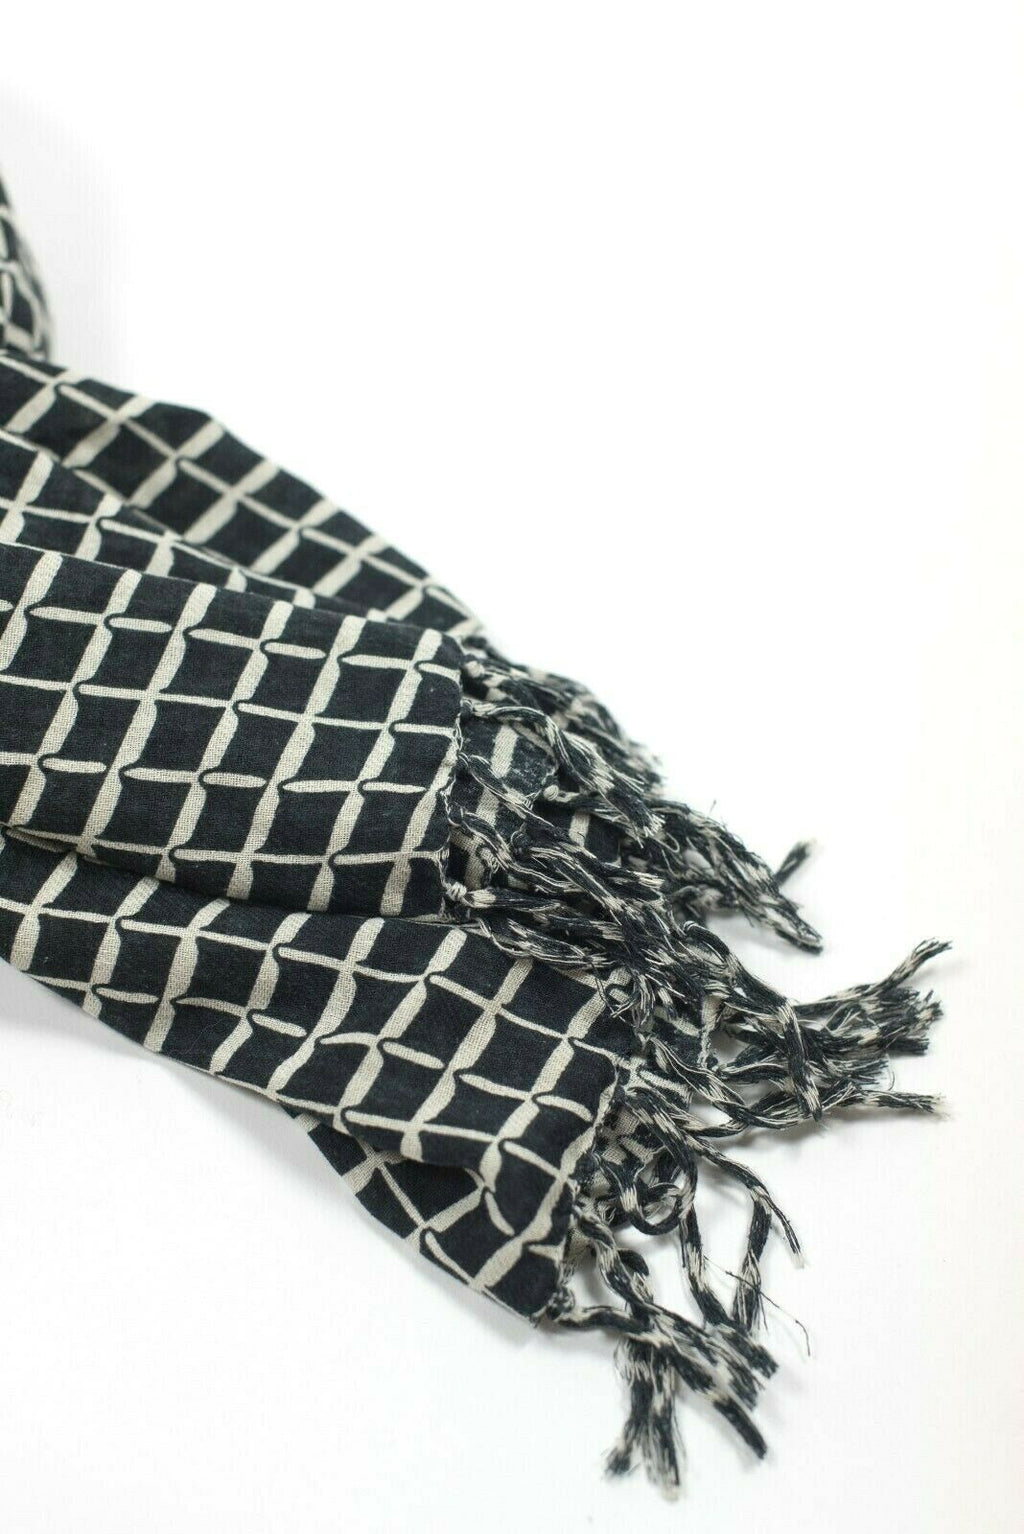 Aritzia Wilfred Womens Large Black Ivory Scarf Grid Graphic Frayed Blanket Scarf